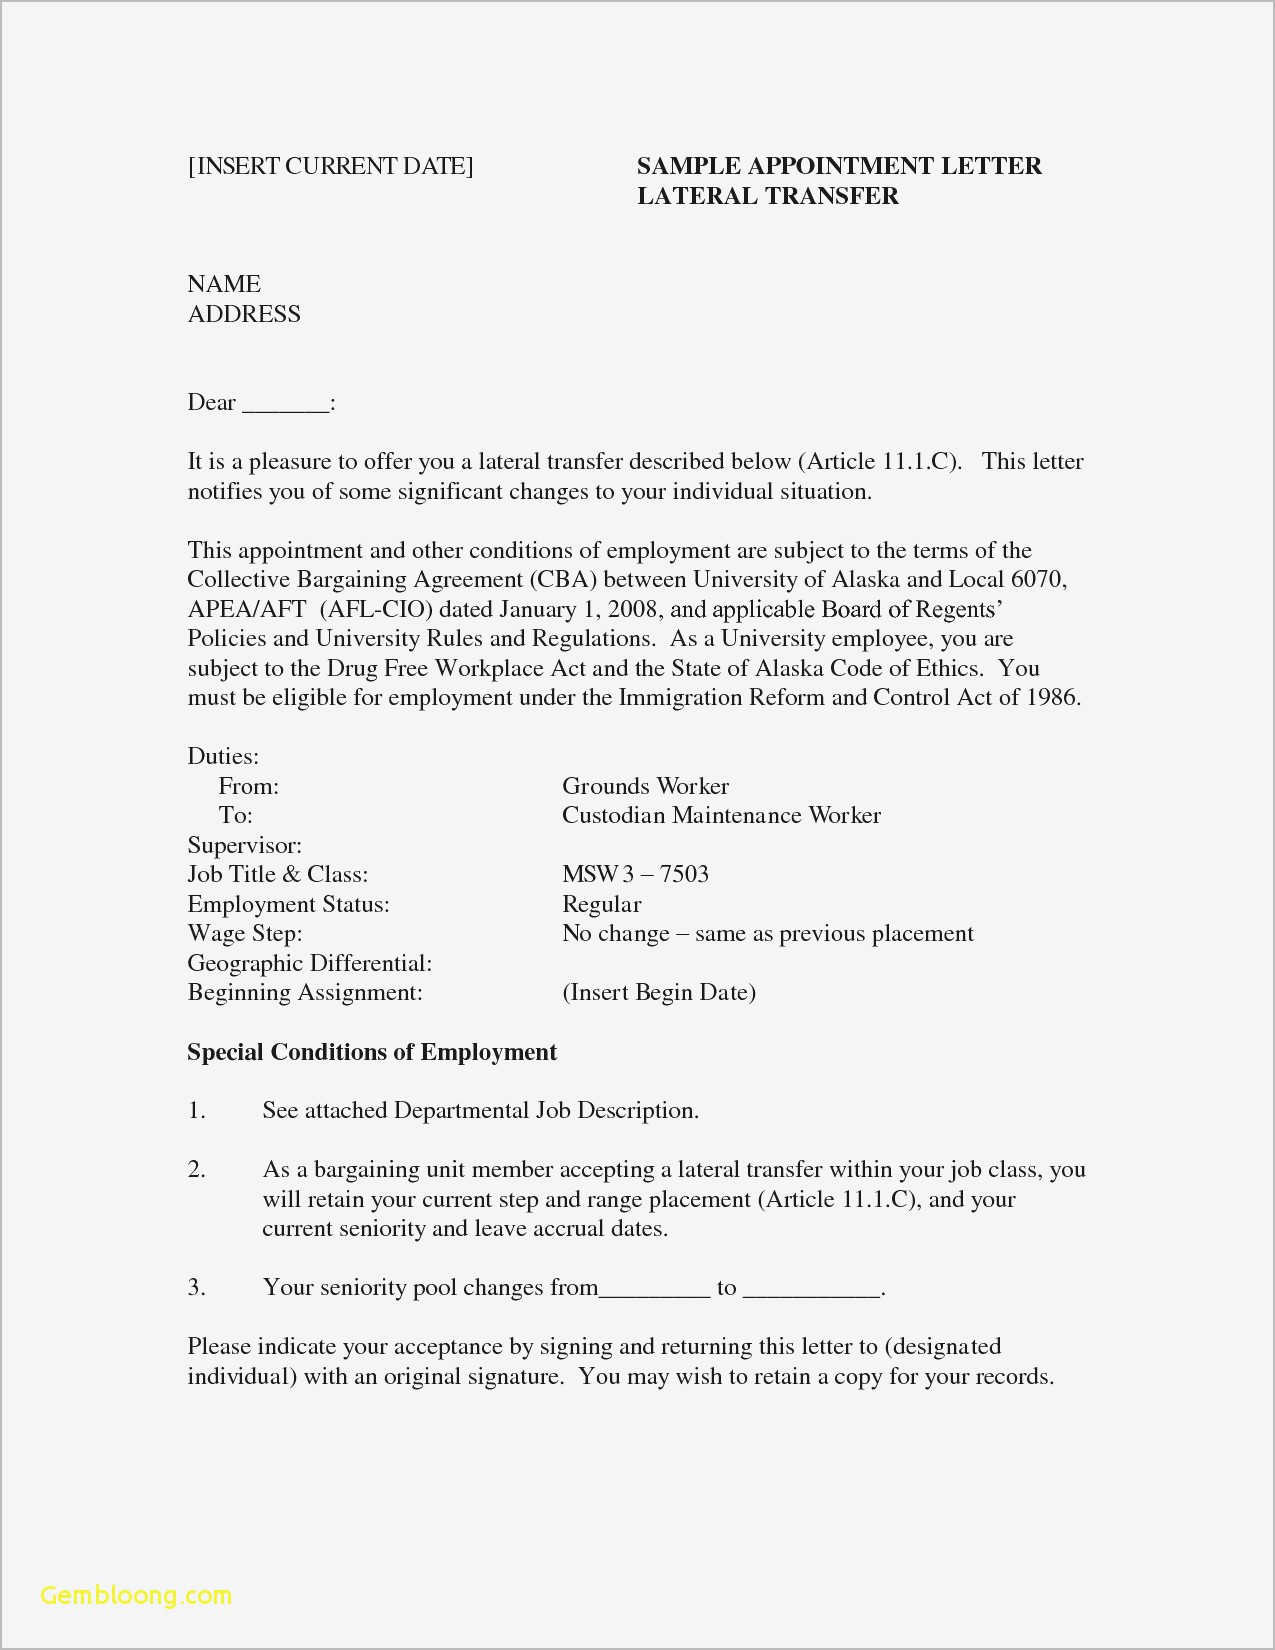 Cover Letter for Teaching Job Template - Cover Letter Layout Pdf format